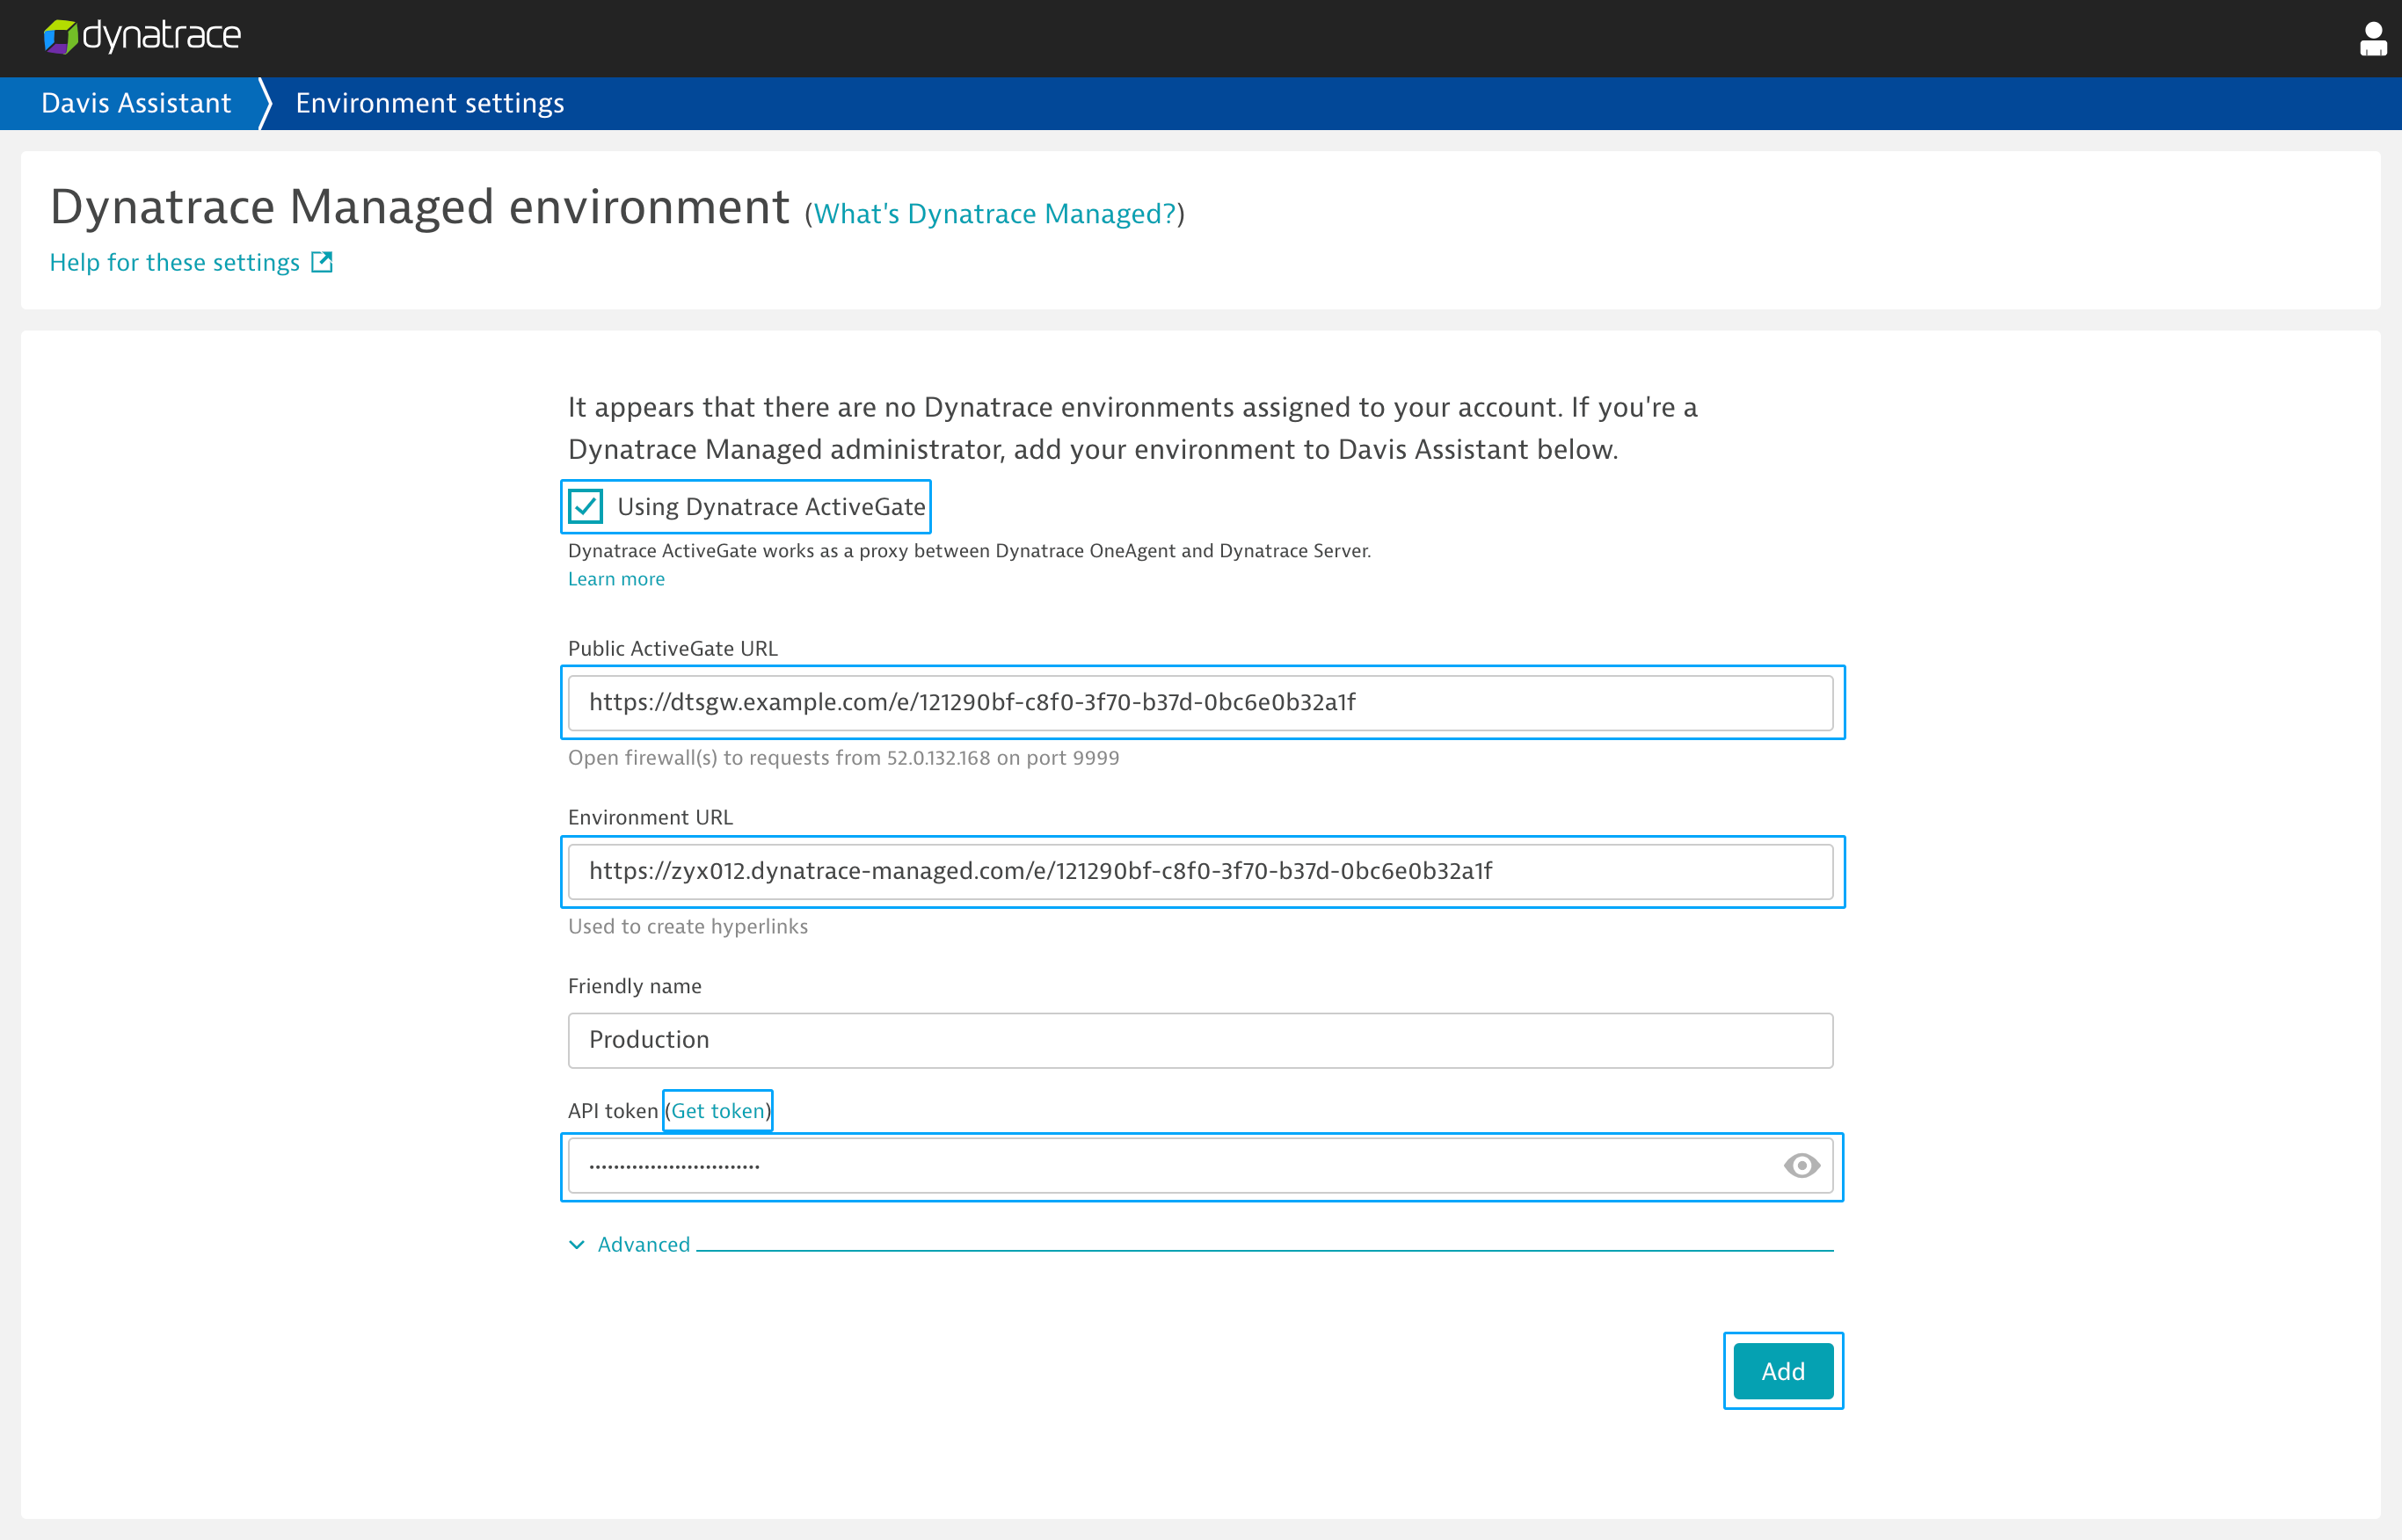 Add a managed environment to Davis Assistant